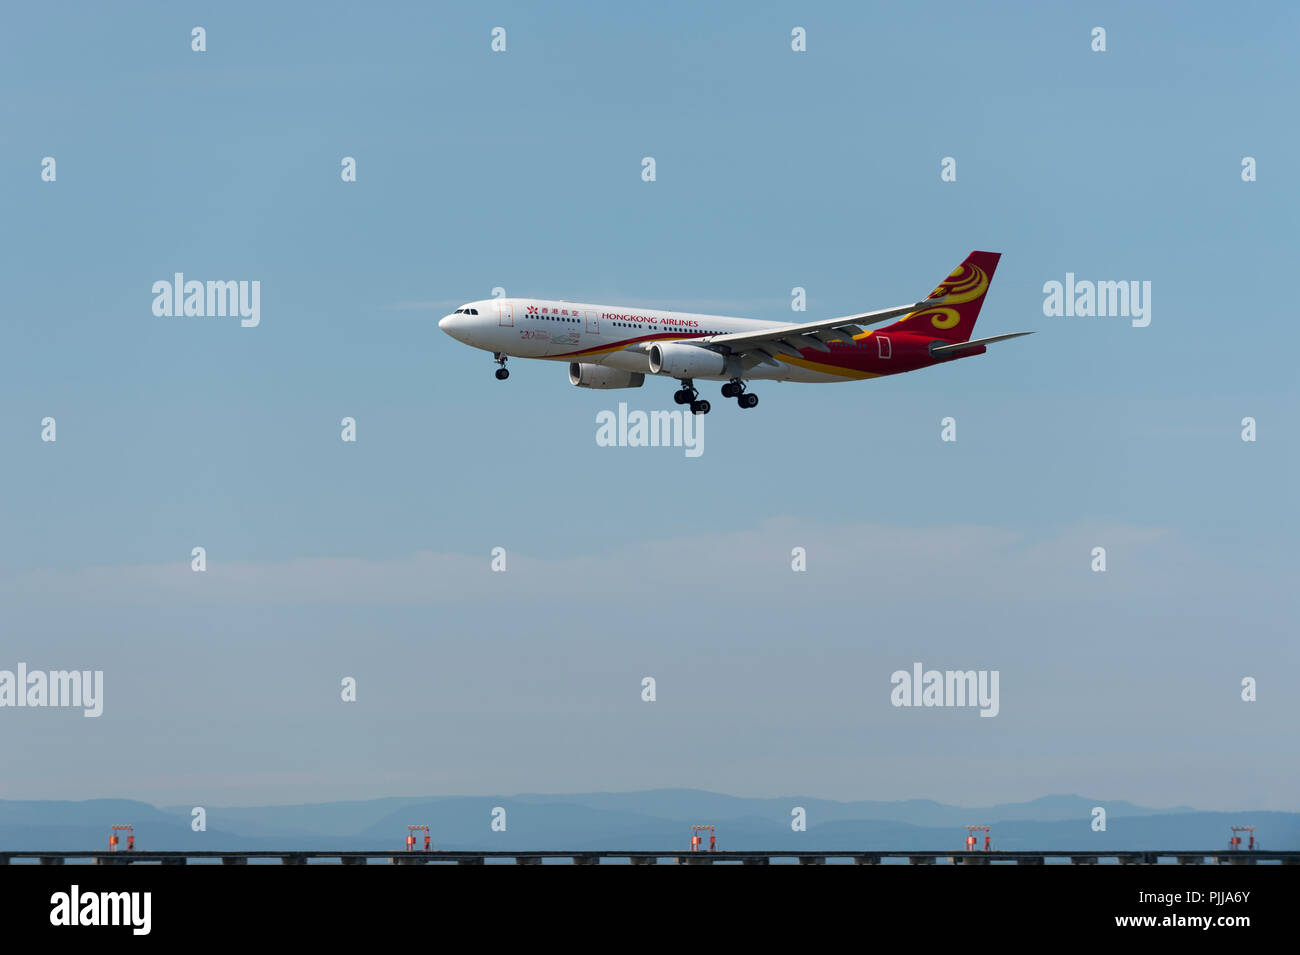 Hong Kong Airlines Wide Body A 350 on approach to Vancouver International Airport. - Stock Image